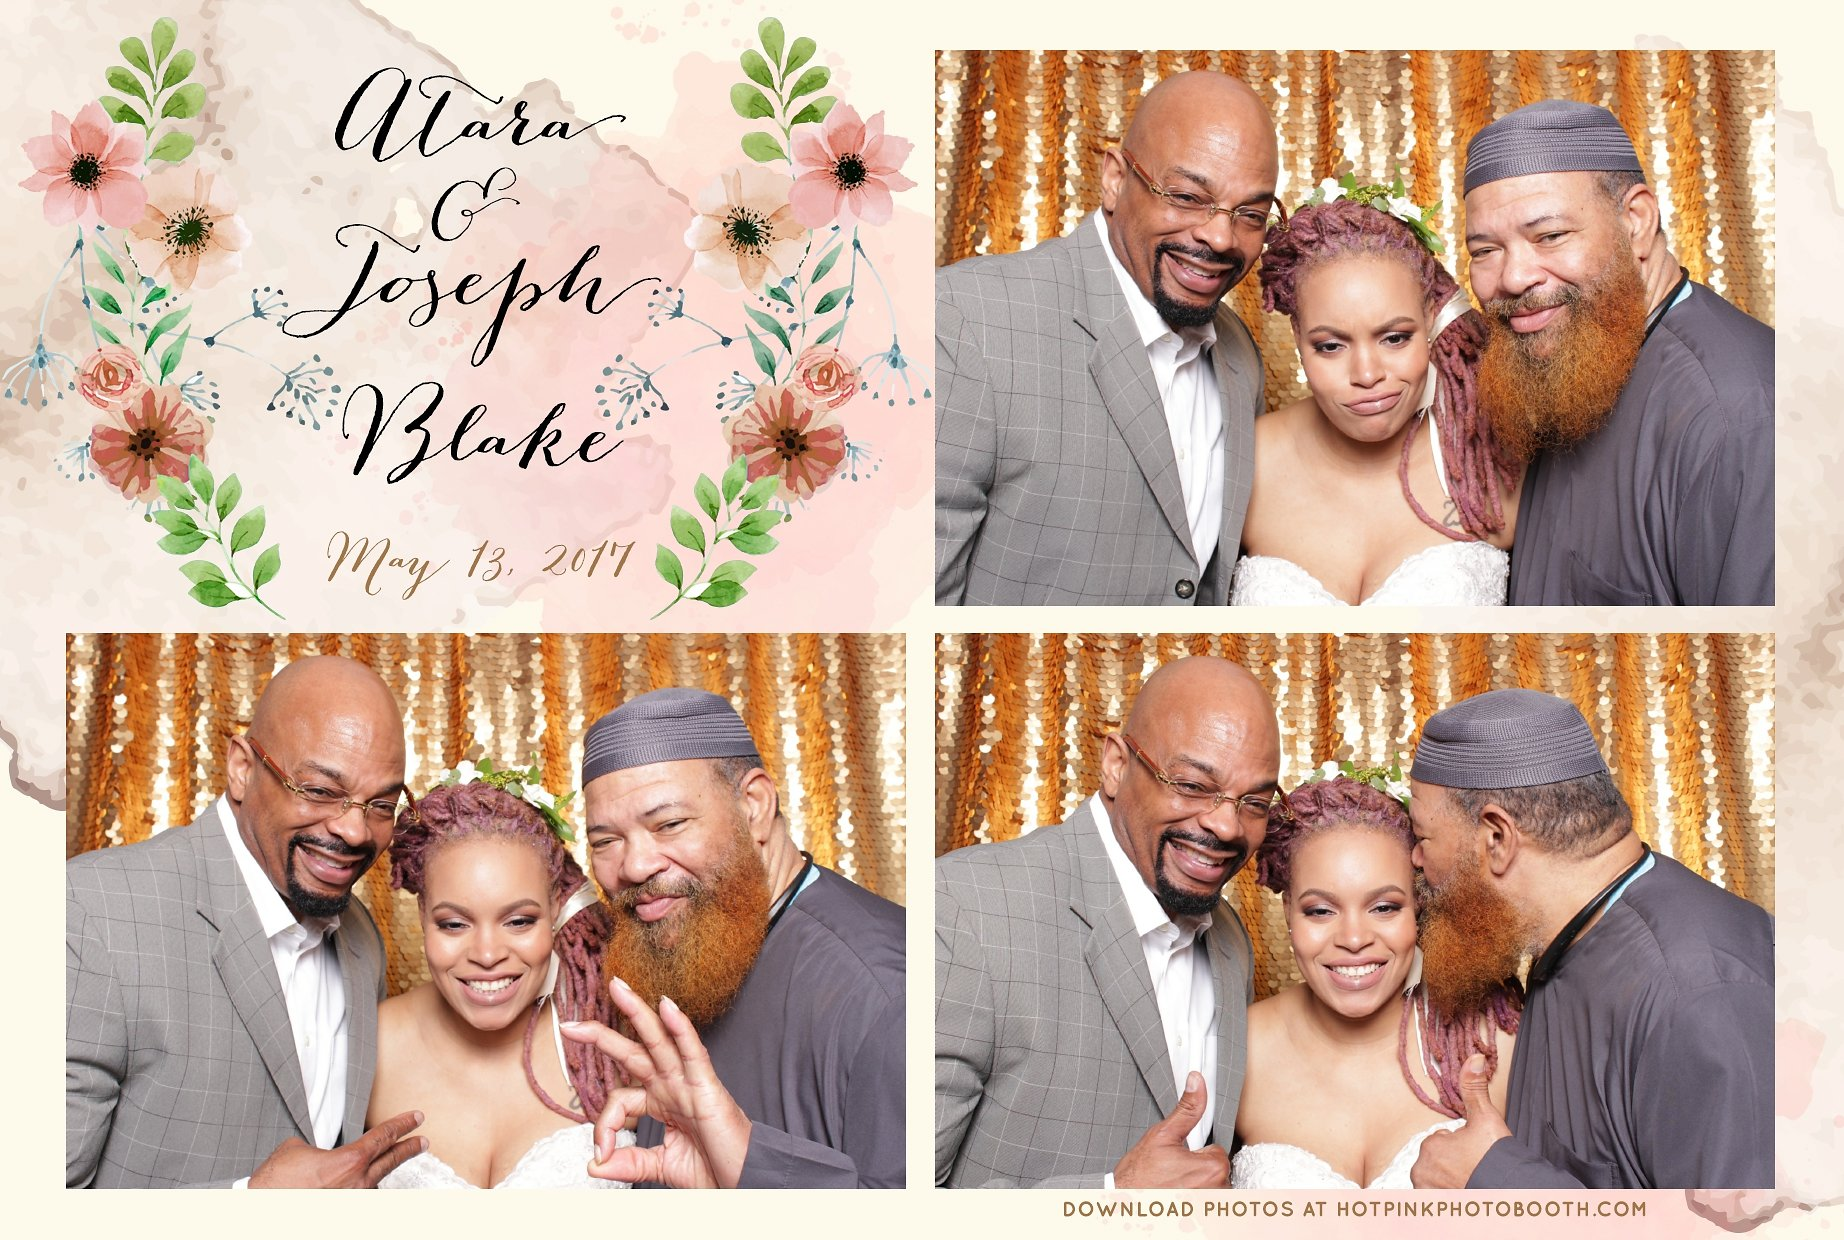 DC Wedding Photo Booth | Hot Pink Photo Booth